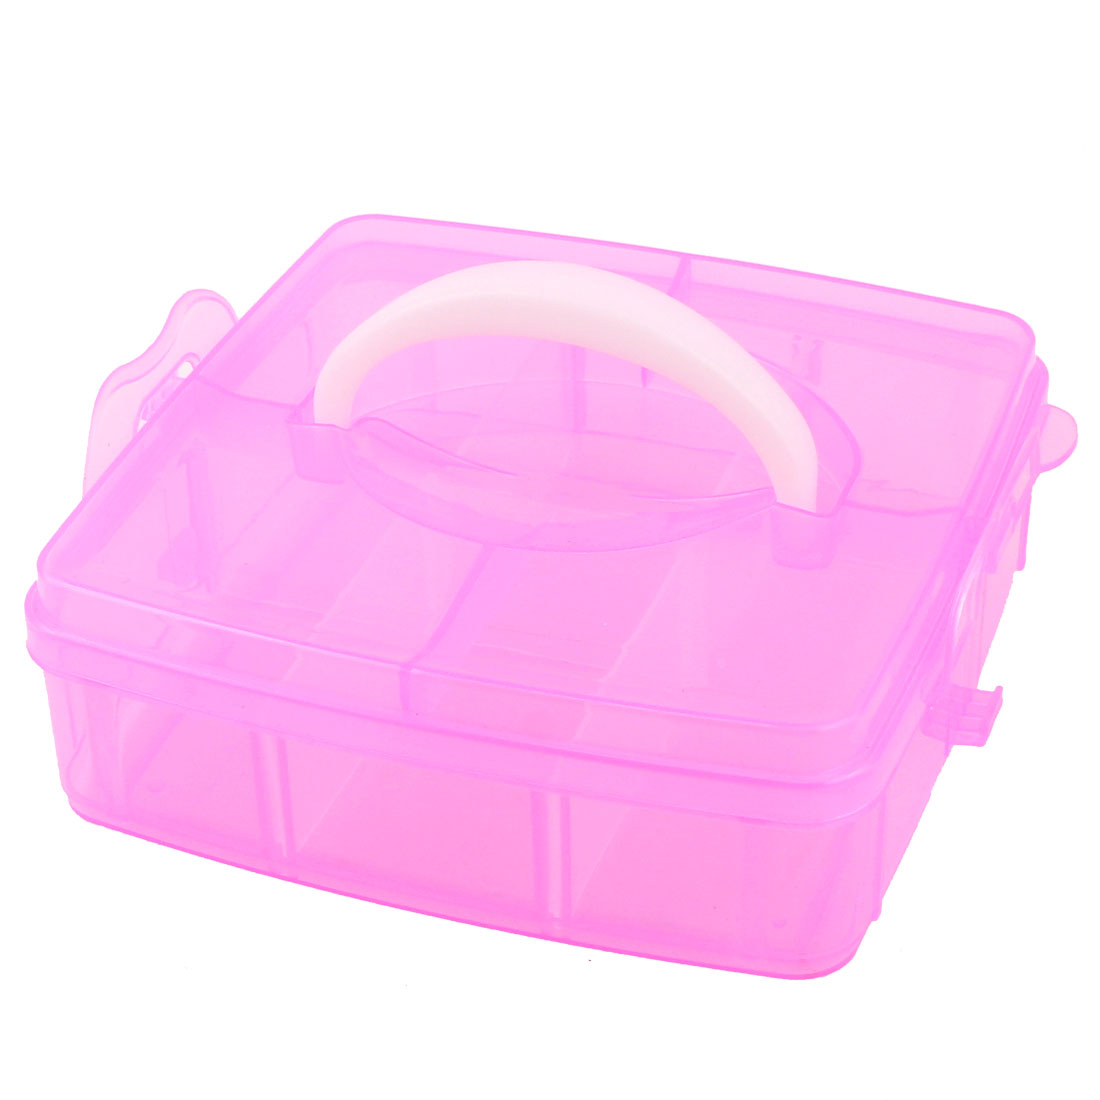 Carry Handle 6 Compartments Separable Storage Case Container Fuchsia